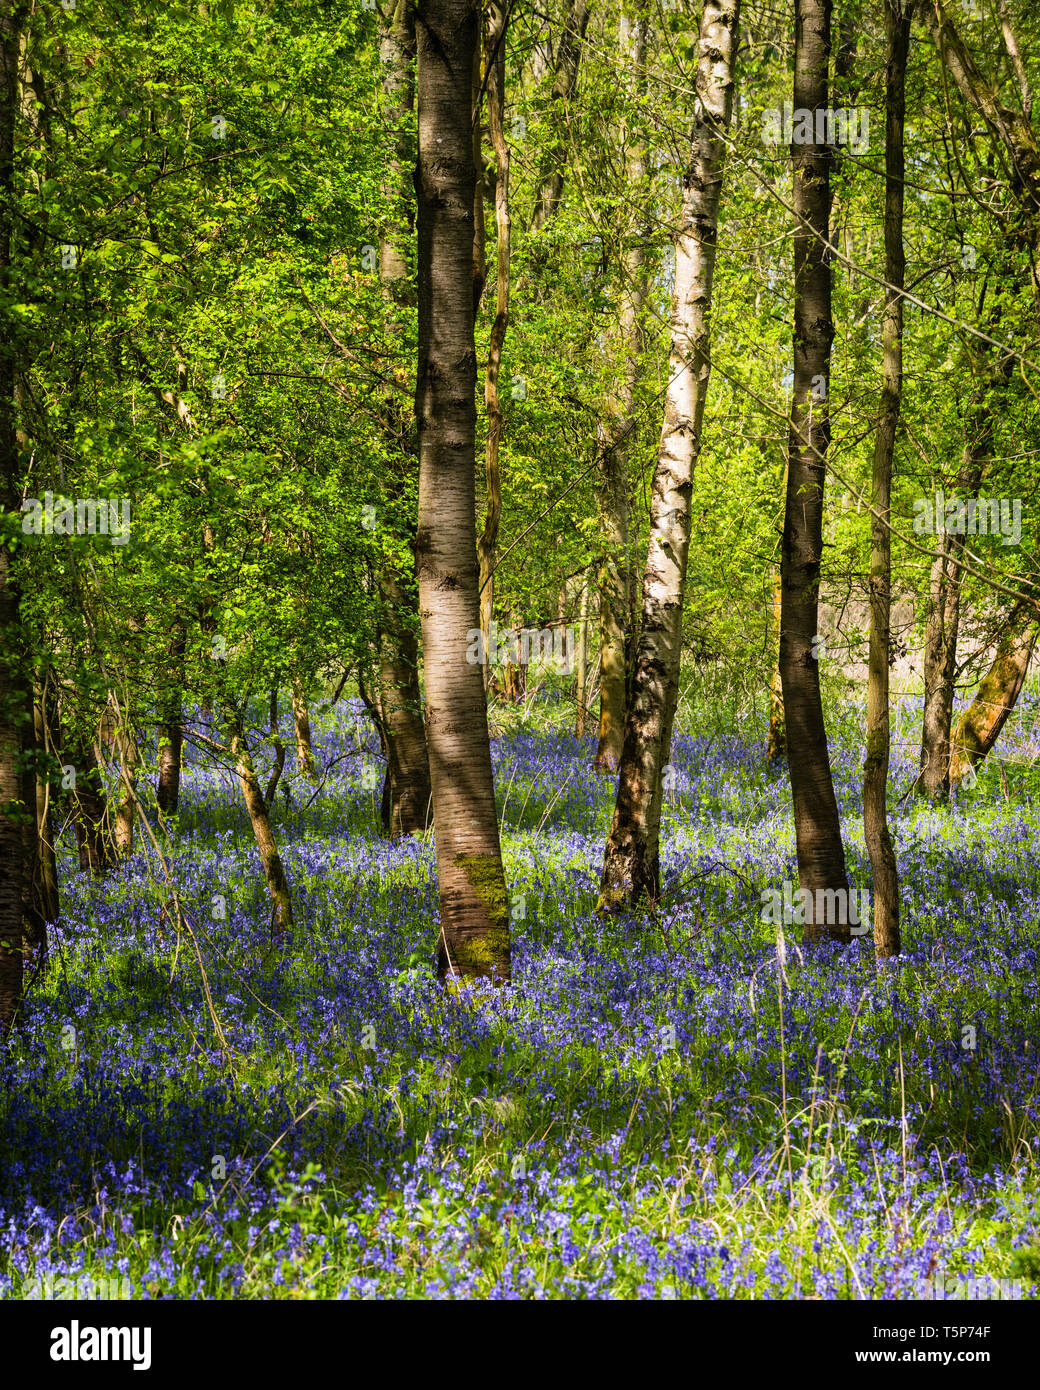 English woodland scene in spring sunshine with fresh new leaves and indigenous bluebells carpeting the floor. Stock Photo